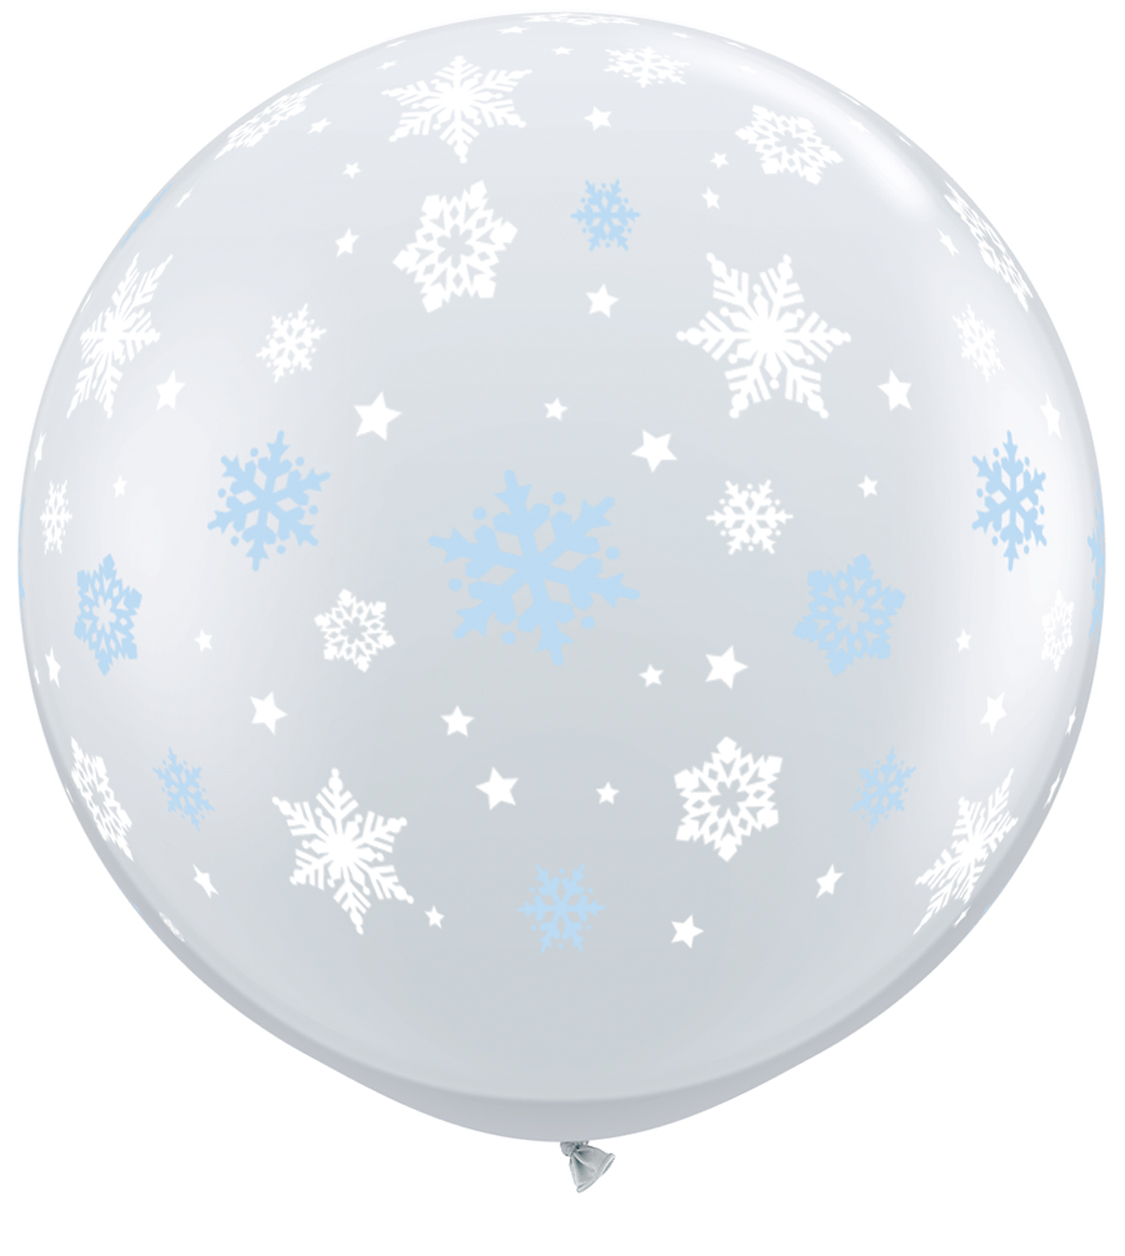 Balloons Fast Coupon & Promo Codes. 2 verified offers for December, Coupon Codes / Movies, Music & Entertainment / Party Supplies / BalloonsFast Coupons. Add to Your Favorites. from 5 users. Take a look at our 2 BalloonsFast promotional codes including 1 sale, and 1 free shipping coupon code%(5).